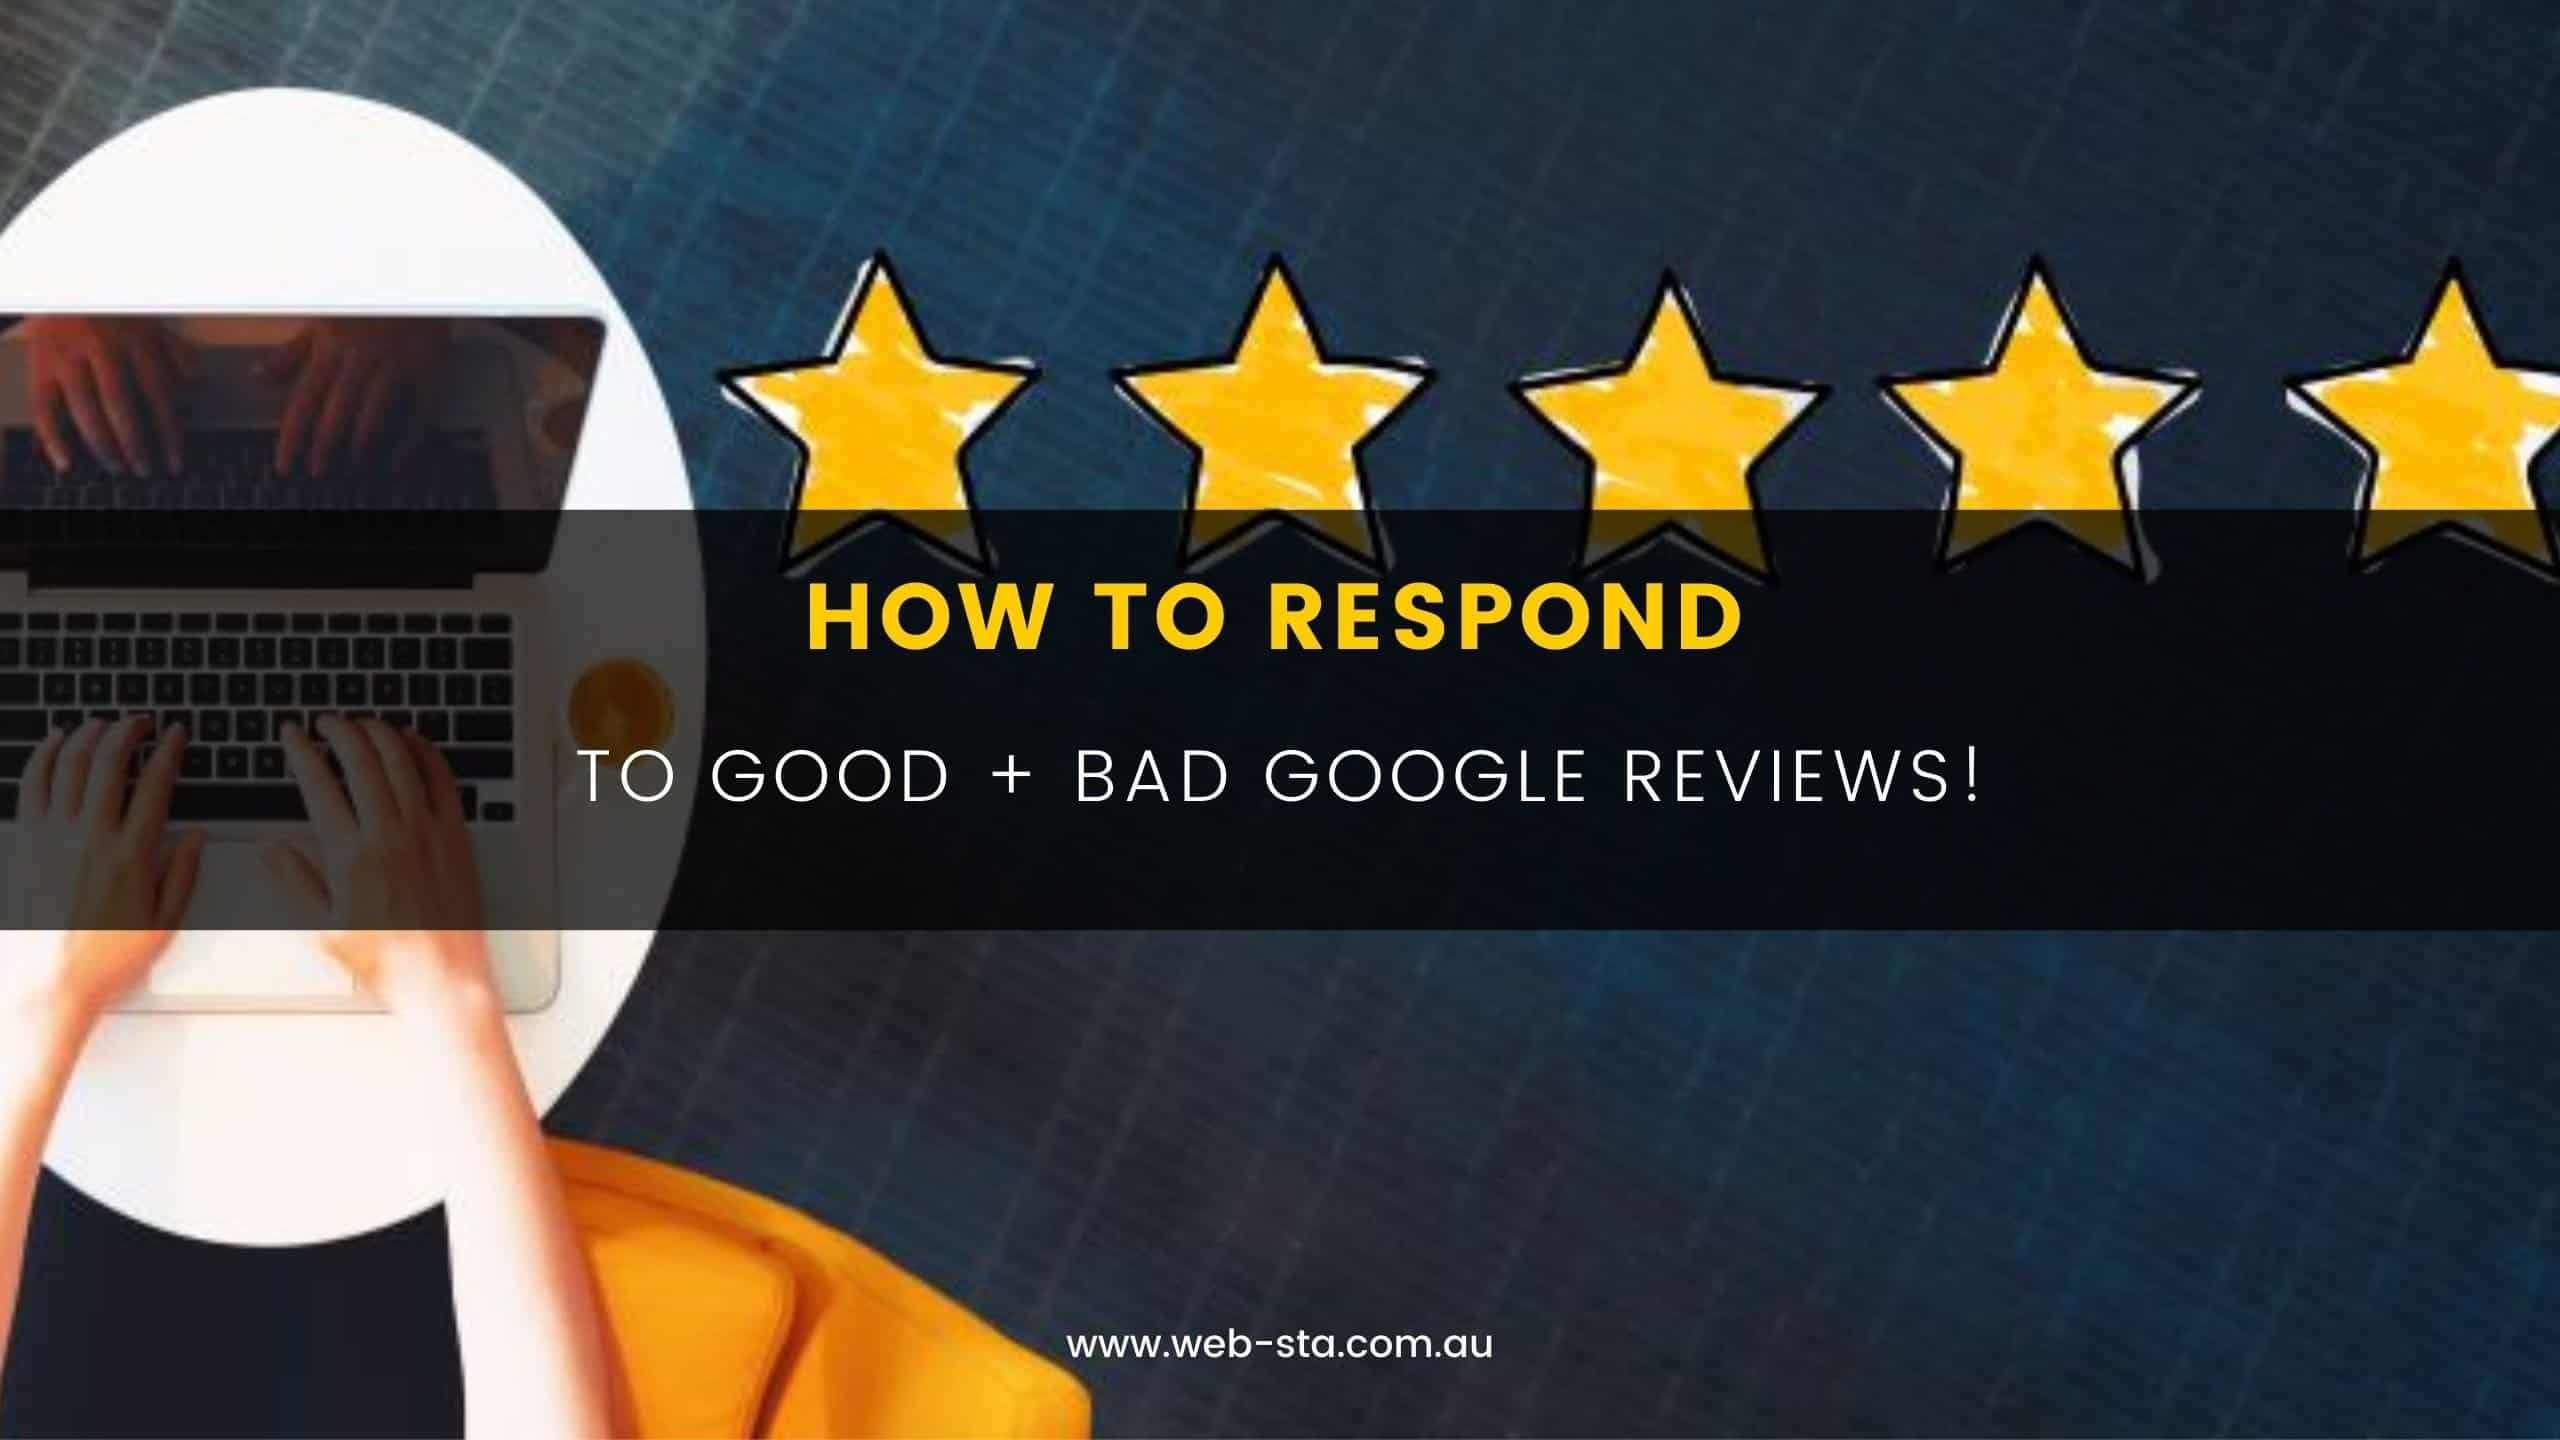 How To Respond To Good + Bad Google Reviews